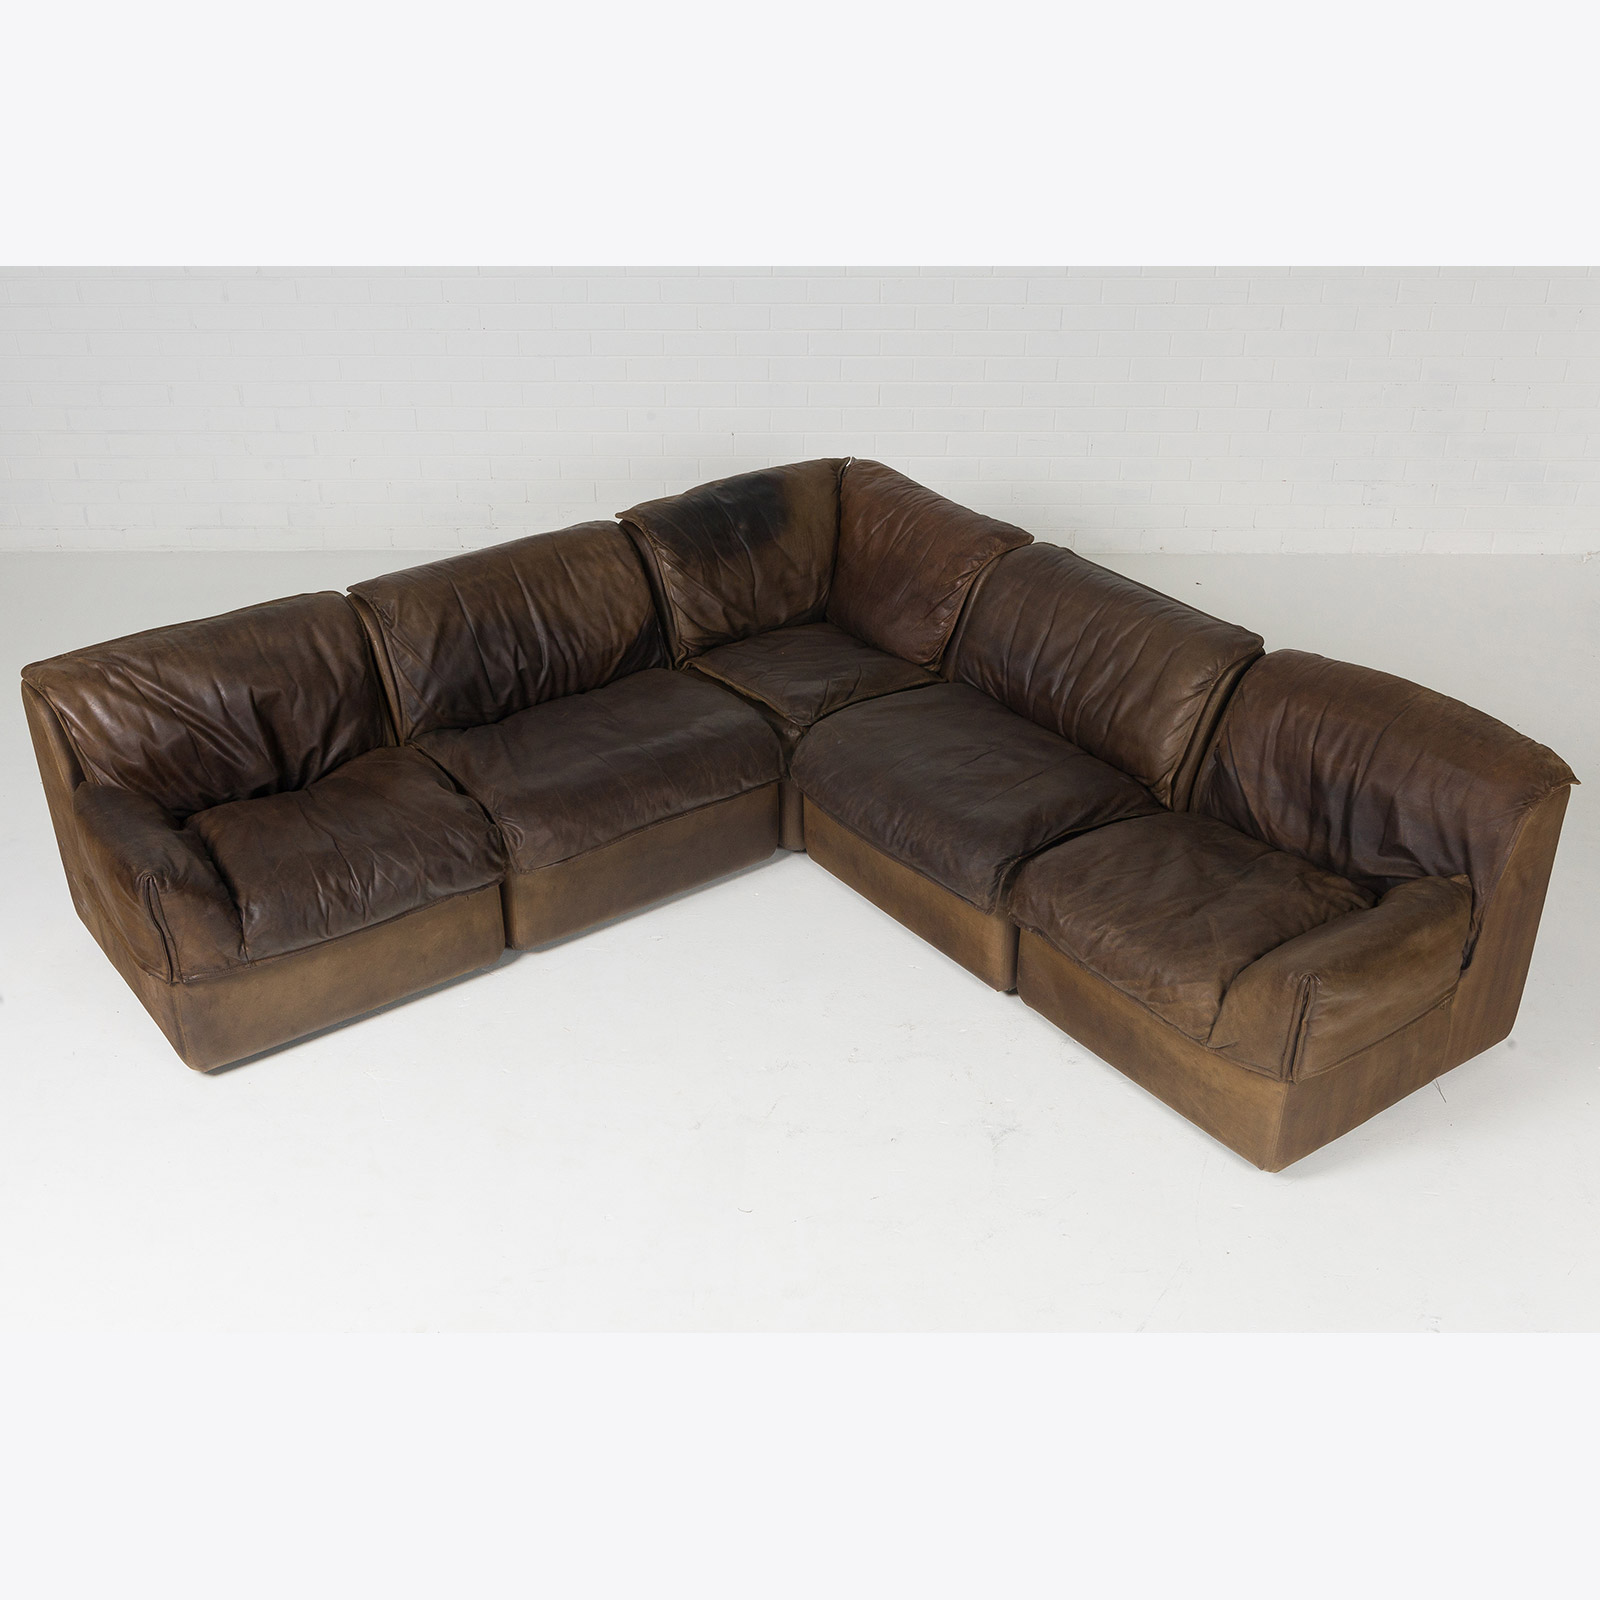 tan leather sofa bed australia corner for 200 pounds modular by cor with five modules in